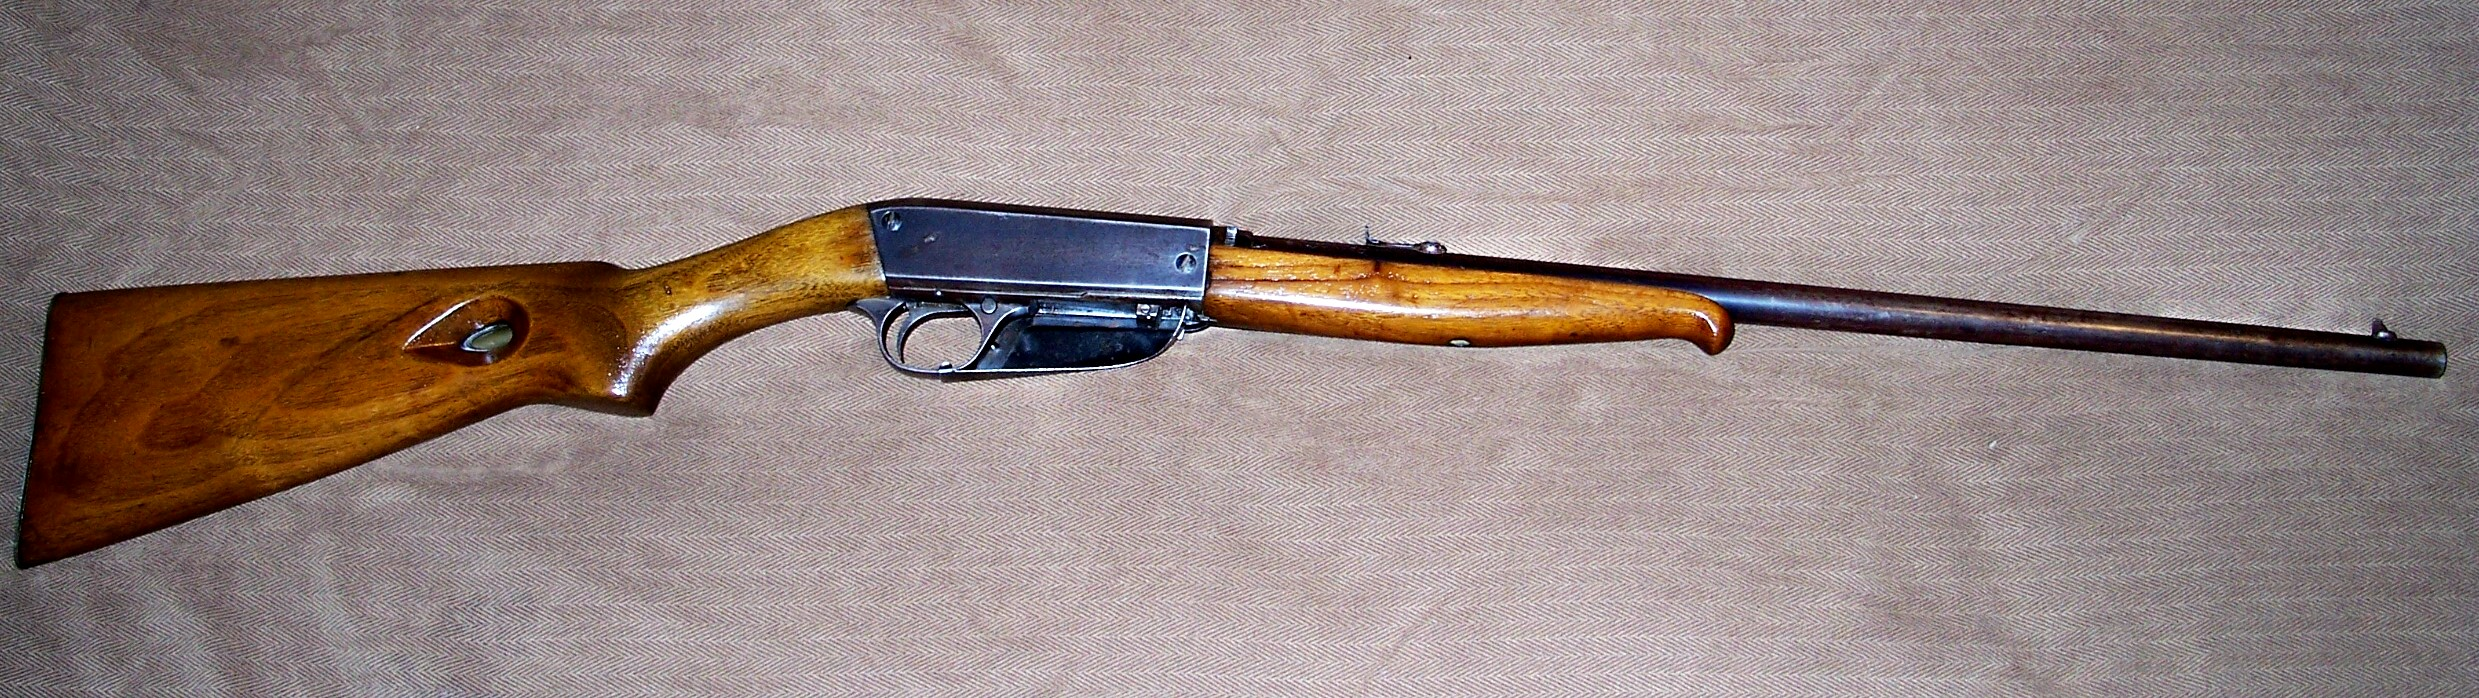 Remington model 24 military wiki fandom powered by wikia for Mobel 24 gartenmobel